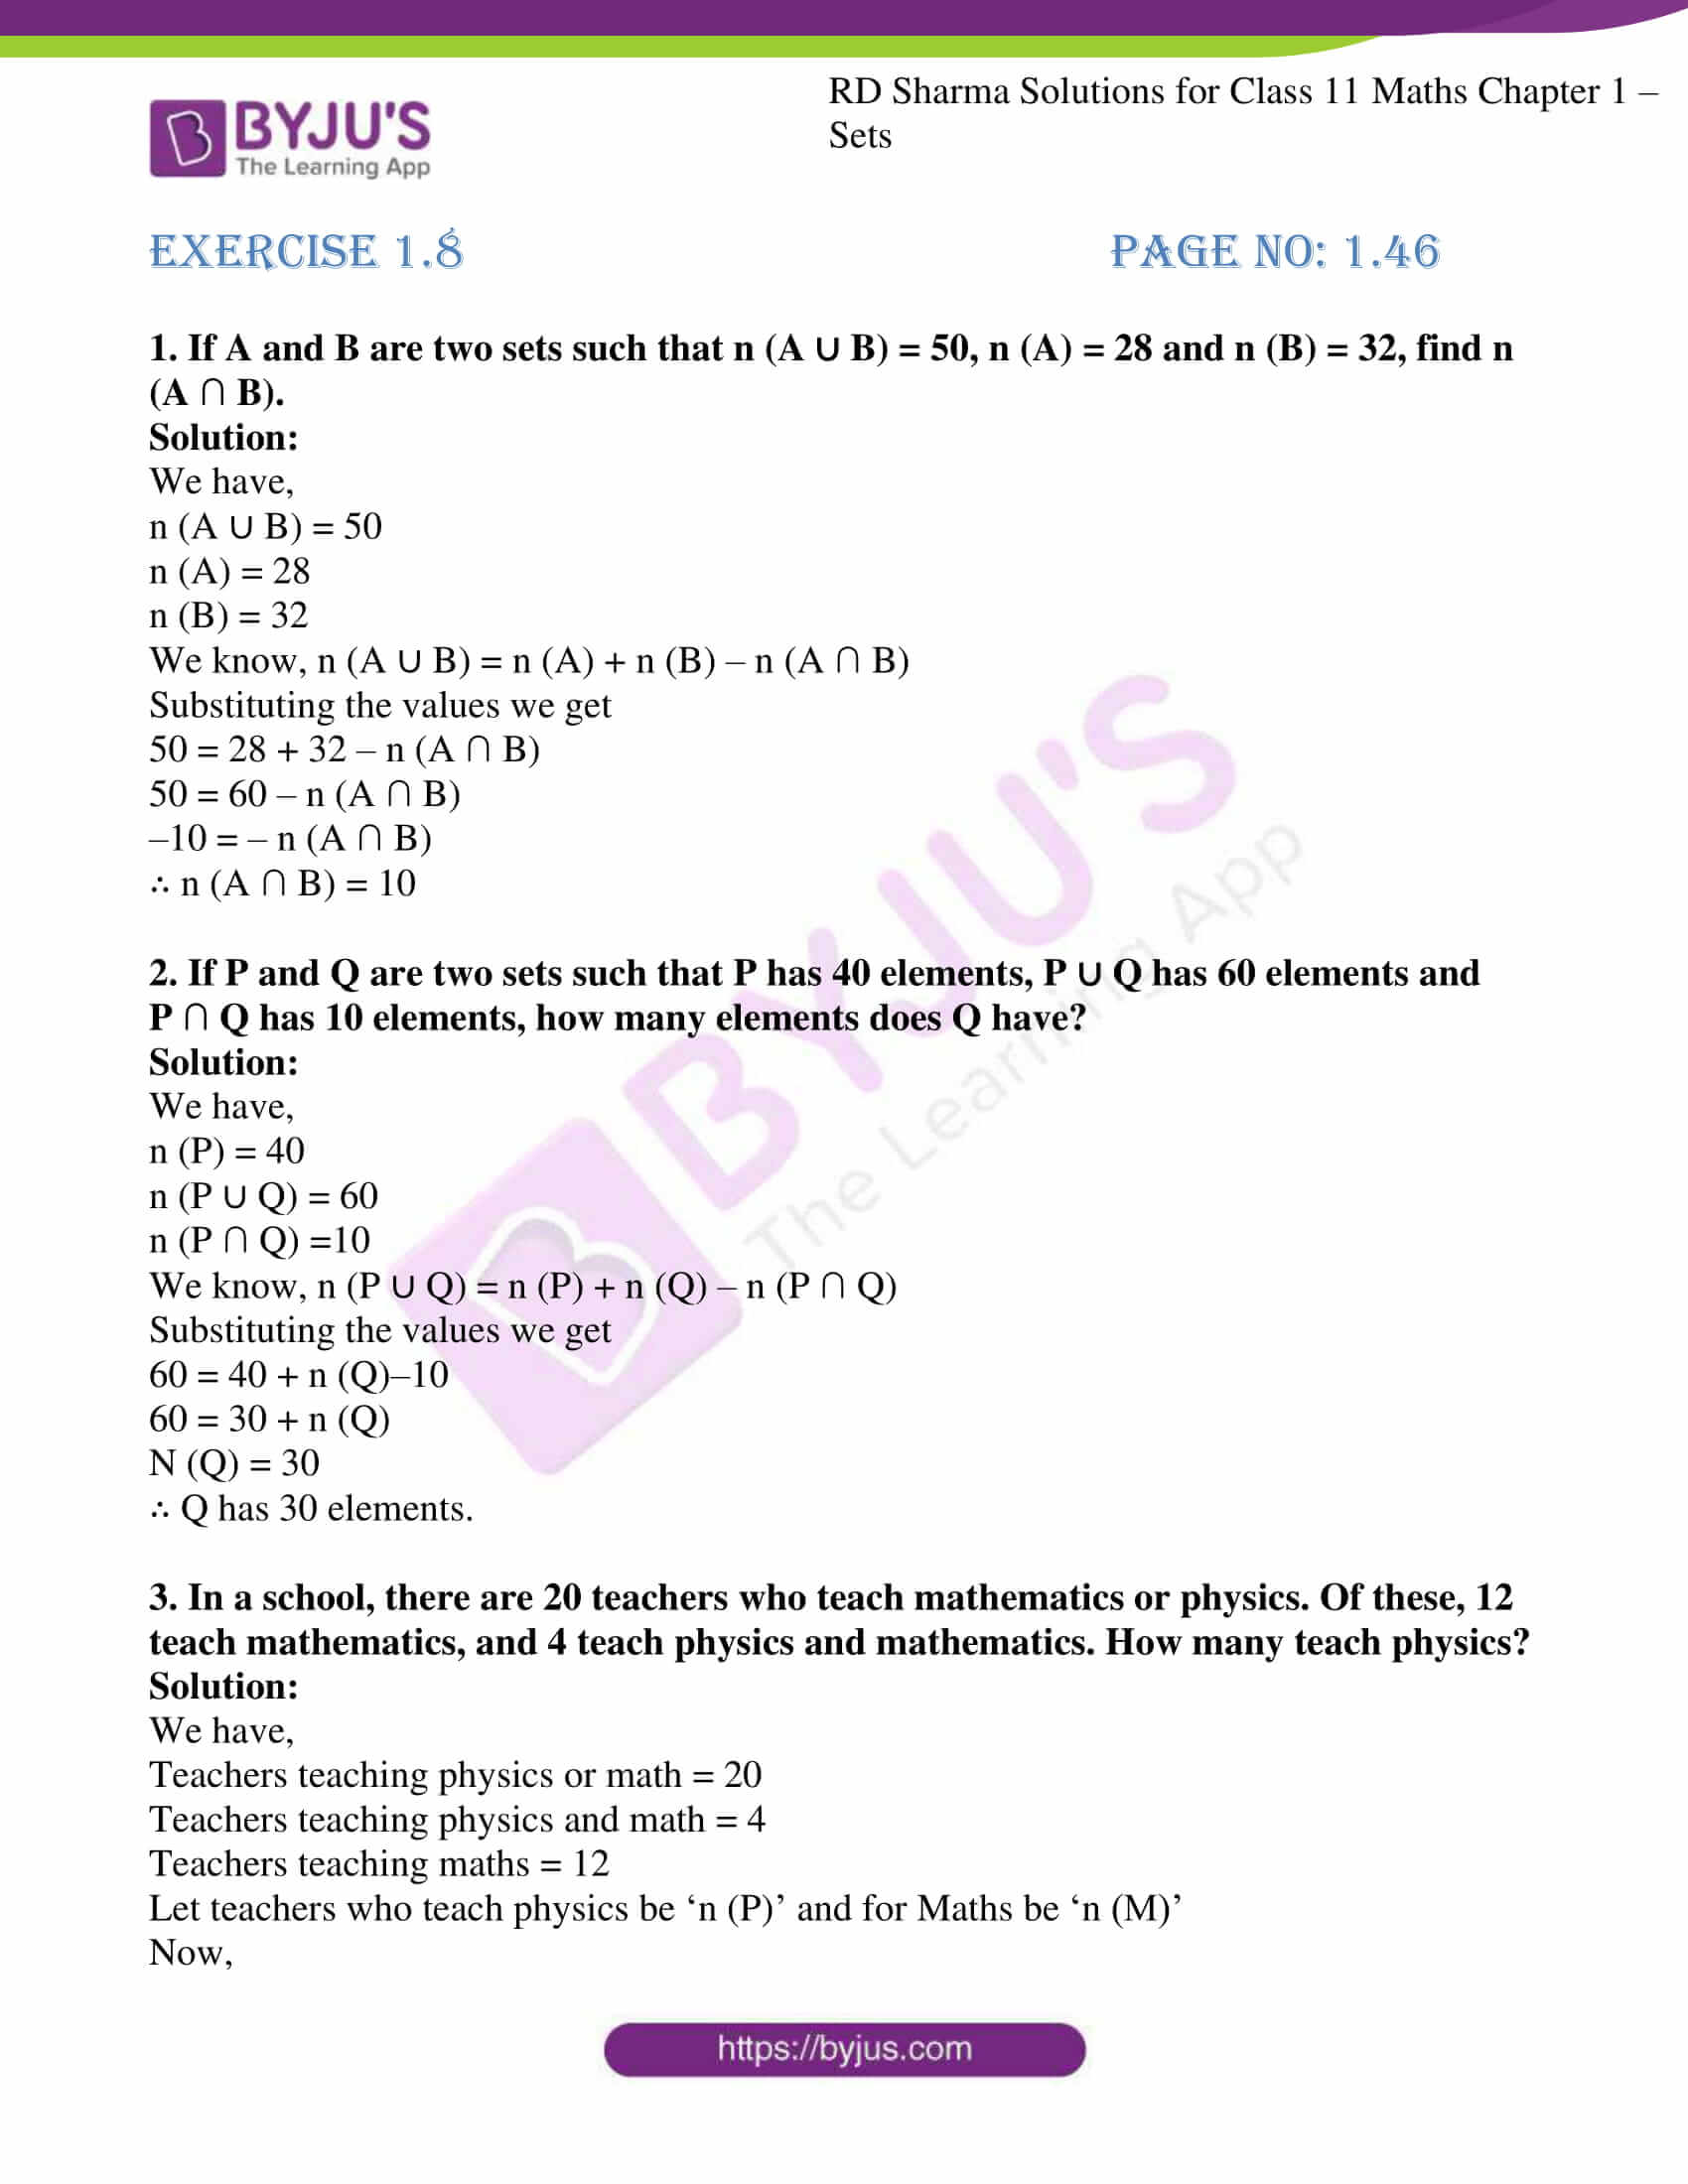 rd sharma class 11 maths ch 1 sets ex 8 1